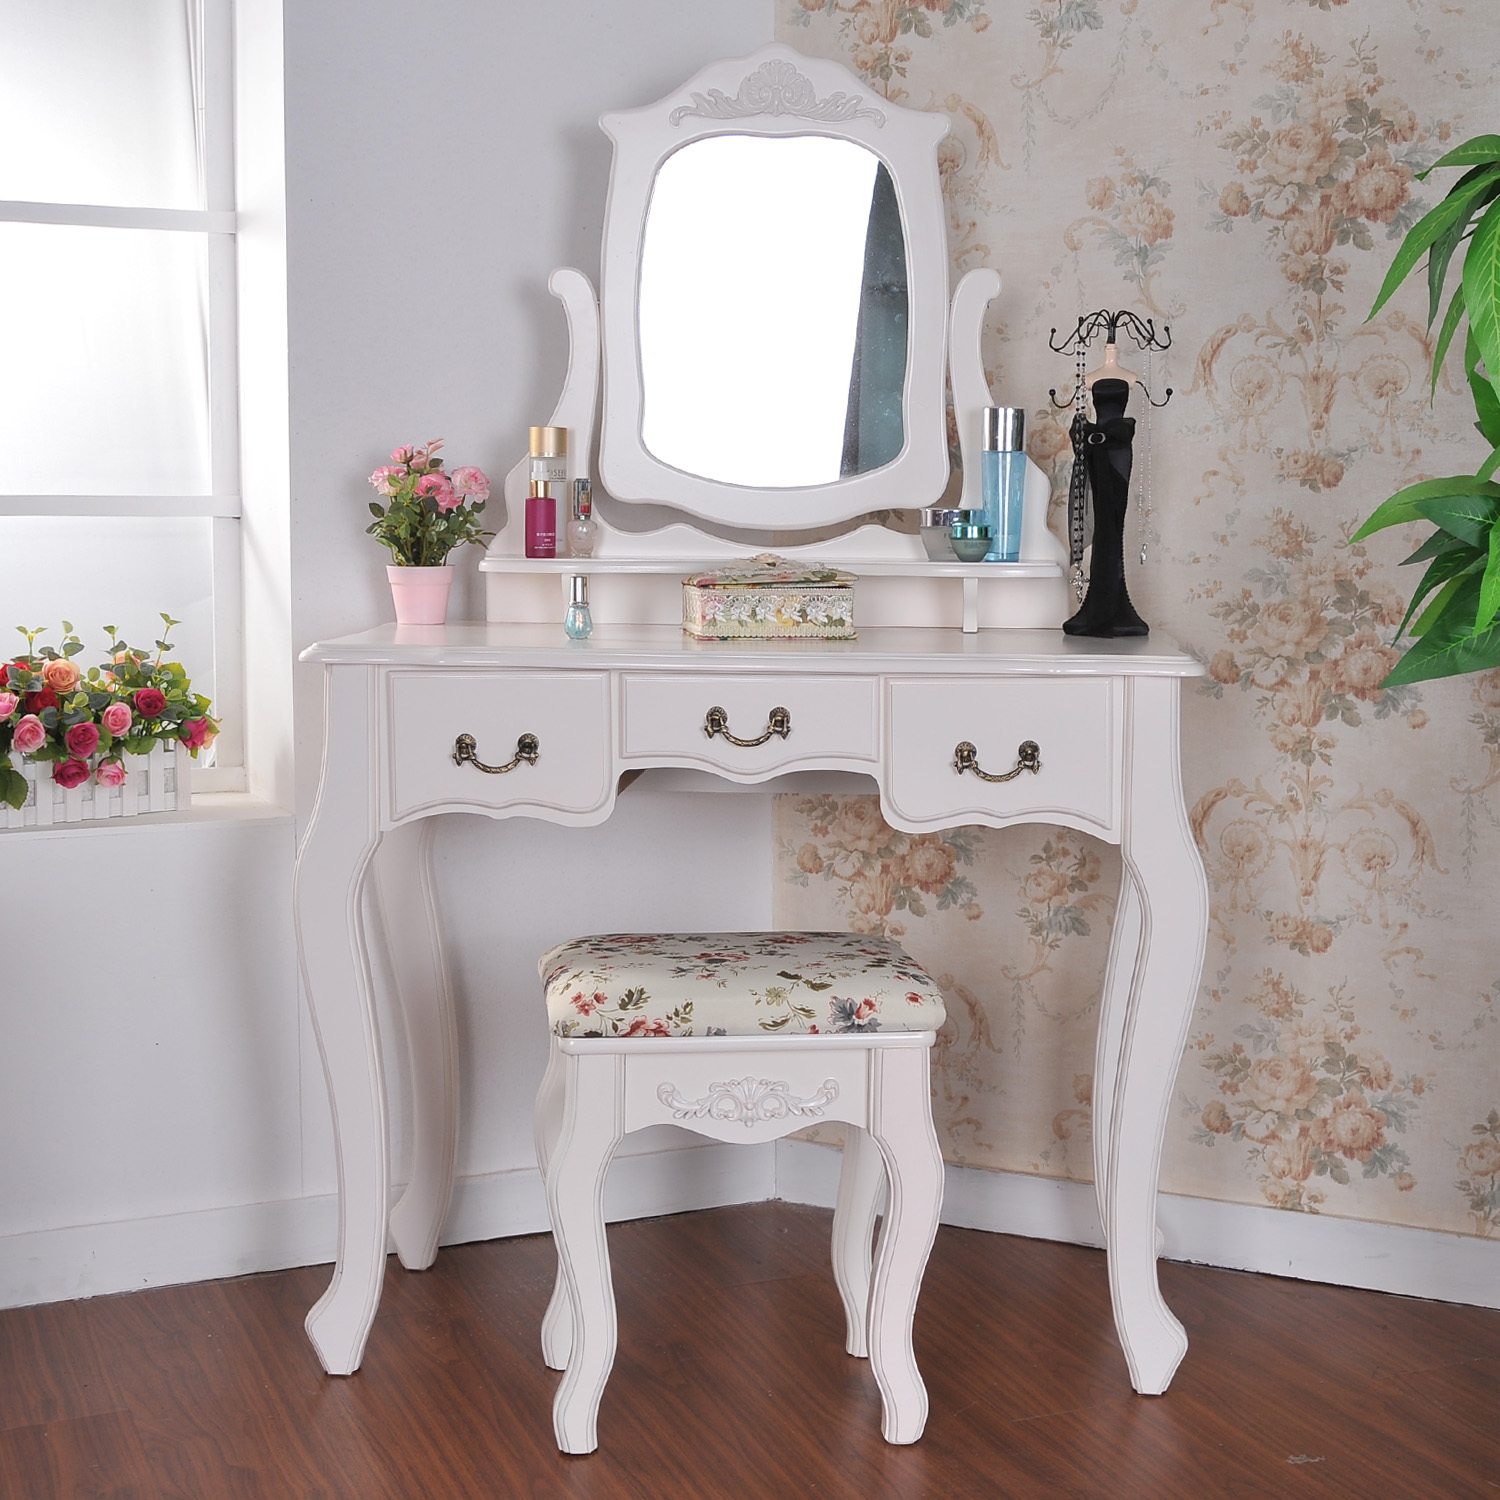 Chic hayworth vanity mirrored vanity and ikea vanity also ikea rug hayworth rug ideas